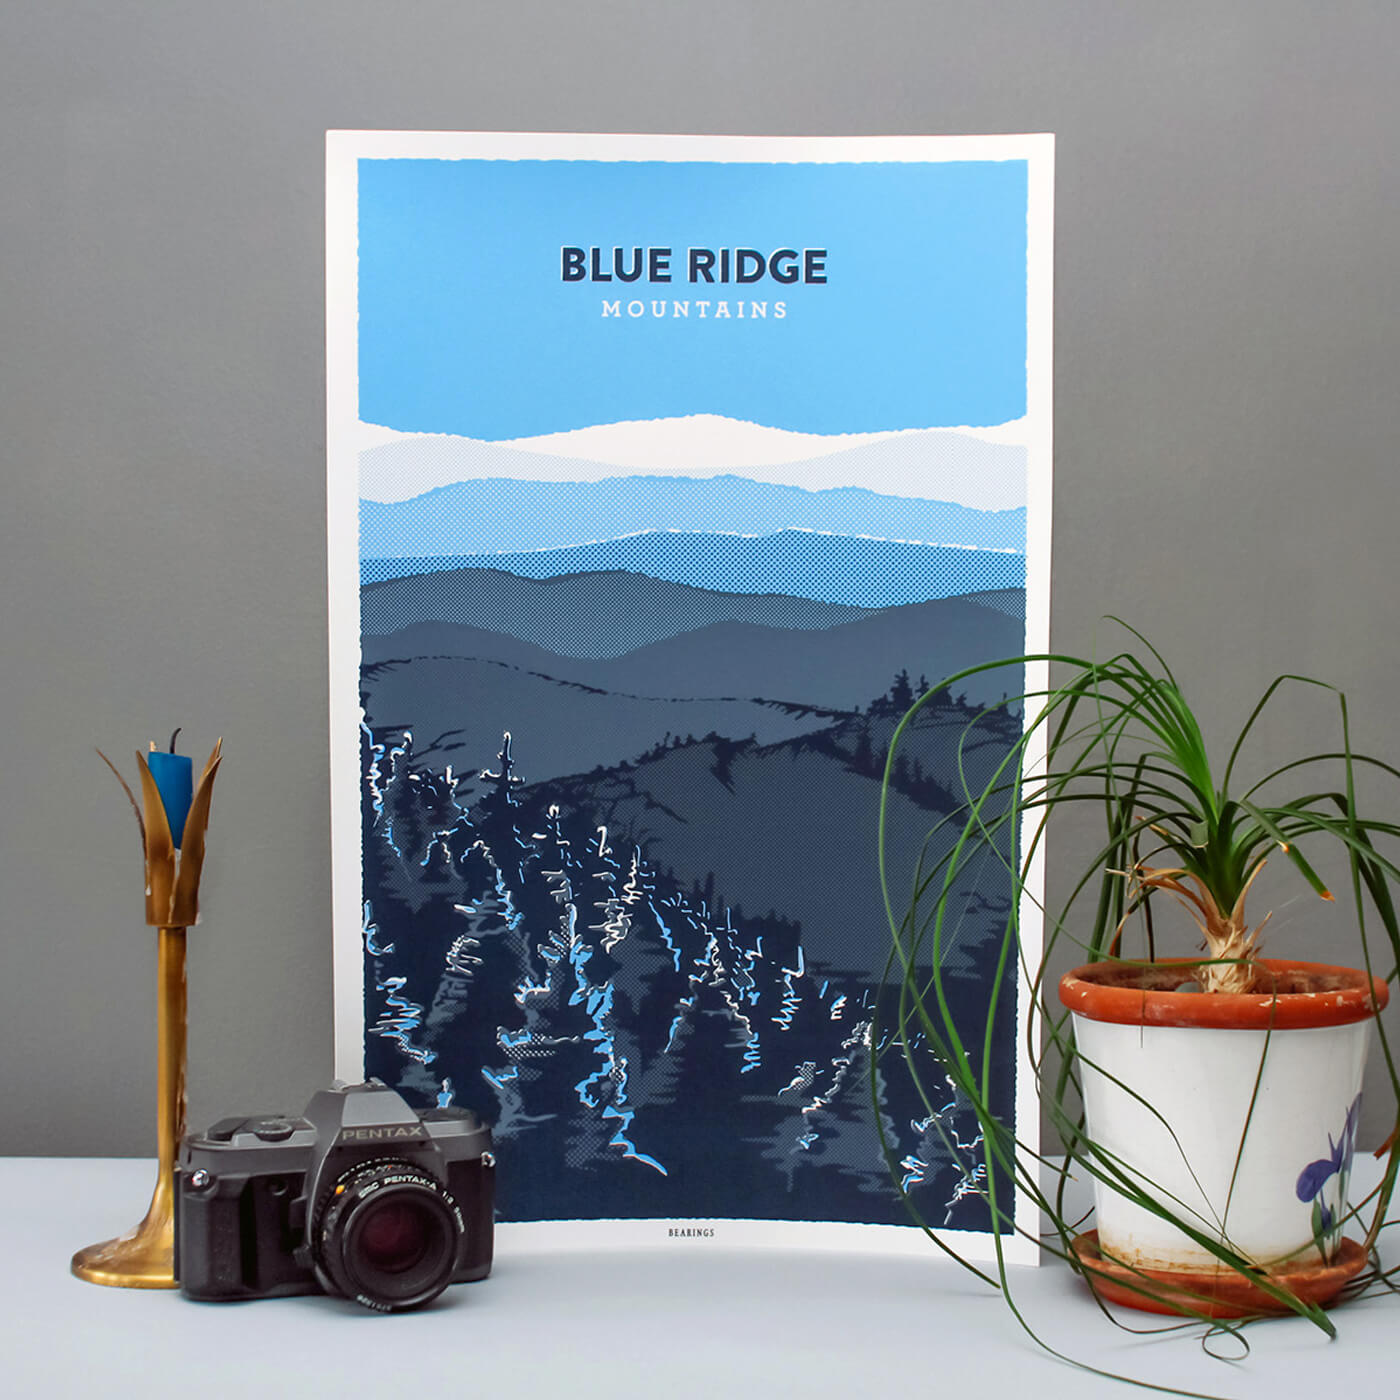 Blue Ridge Mountains Poster Print - A screen-printed poster illustrated to capture the rolling, gentle waves of the Blue Ridge Mountains.View Project →